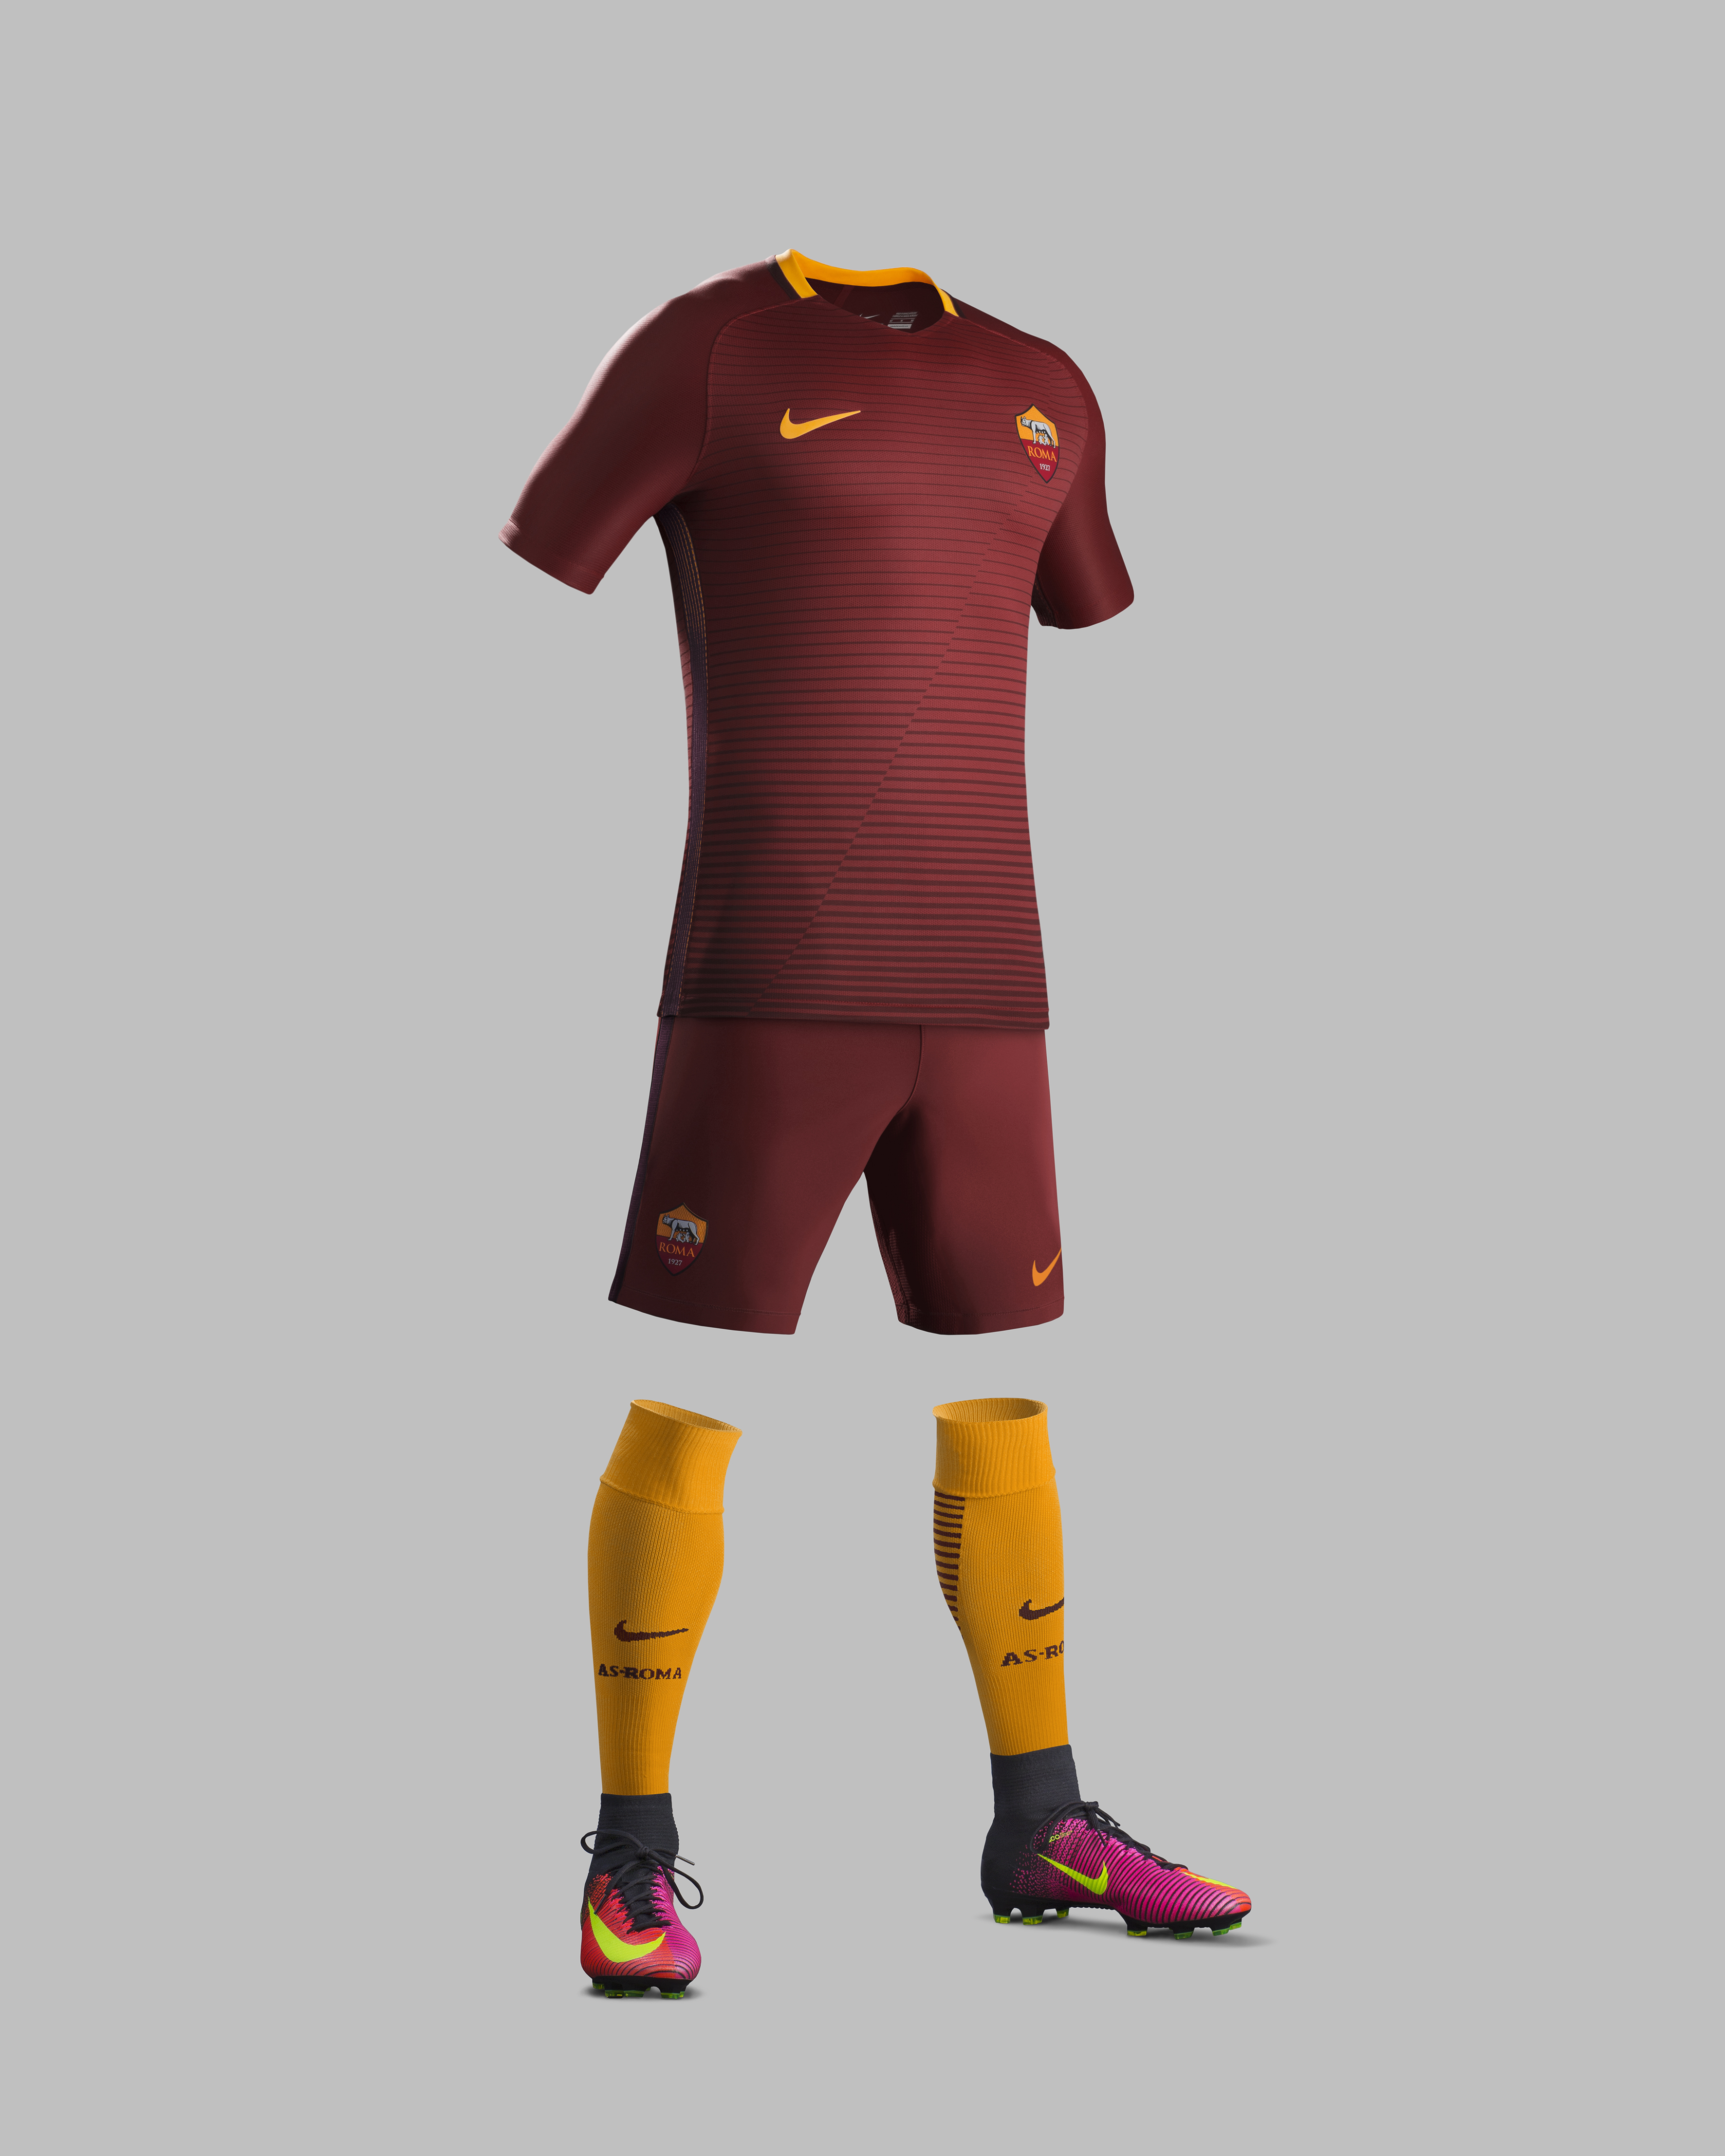 Su16_CK_Comms_H_Full_Body_Match_AS_Roma_R_original